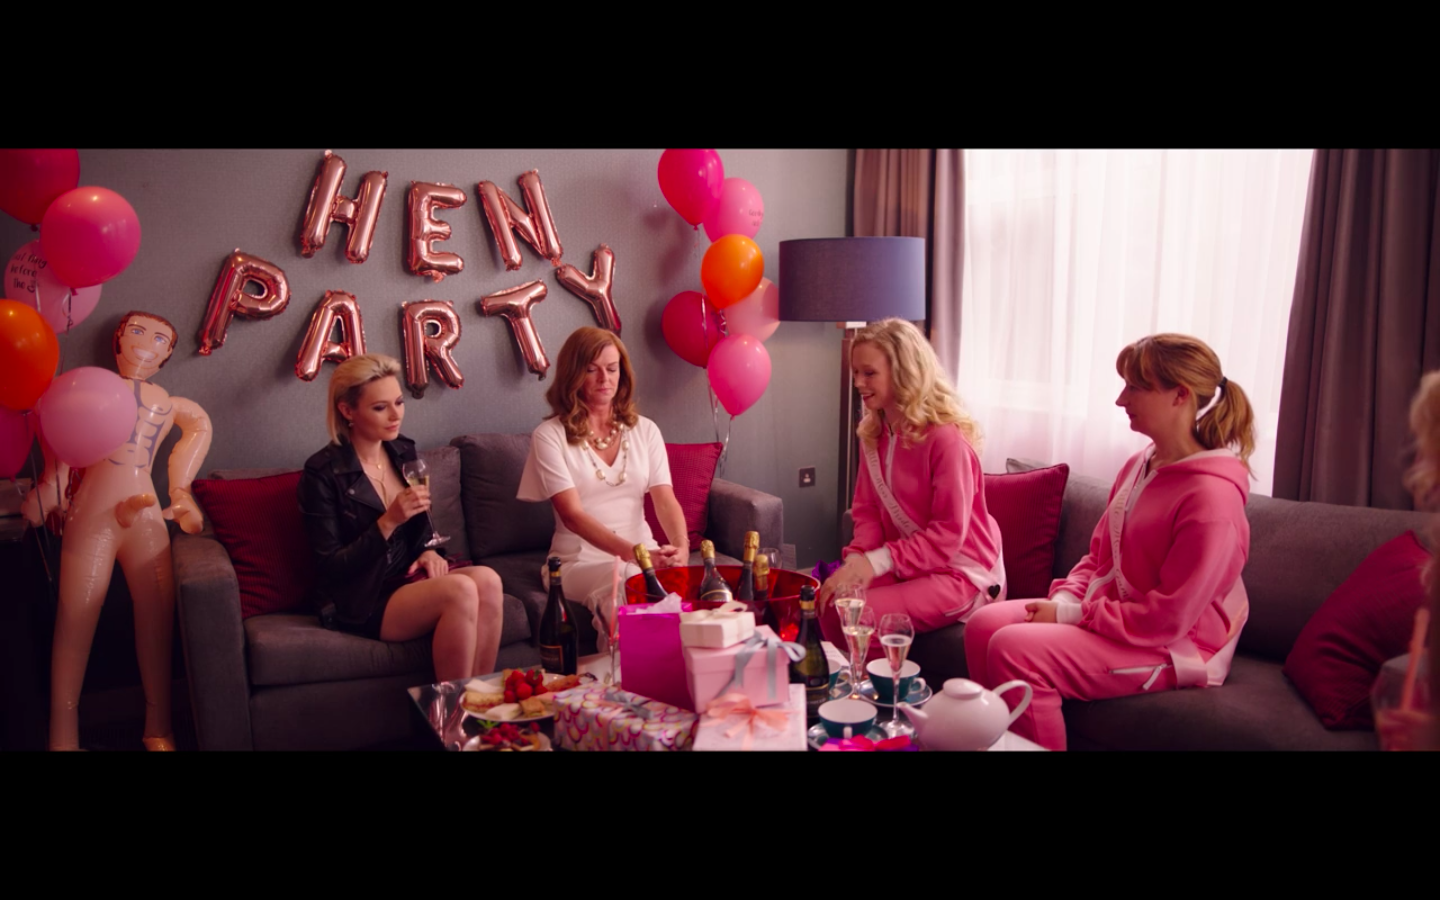 Eve, wearing a low-cut black dress, a black leather jacket, and black eye makeup with her hair slicked back sits next to her mother who is wearing a white dress. Behind them are balloon letters spelling out HEN PARTY. On either side of them are balloons. Next to Eve is a male sex doll. Other guests are dressed in vibrant pink warm up suits with pink sashes. The gifts are all wrapped in pink.